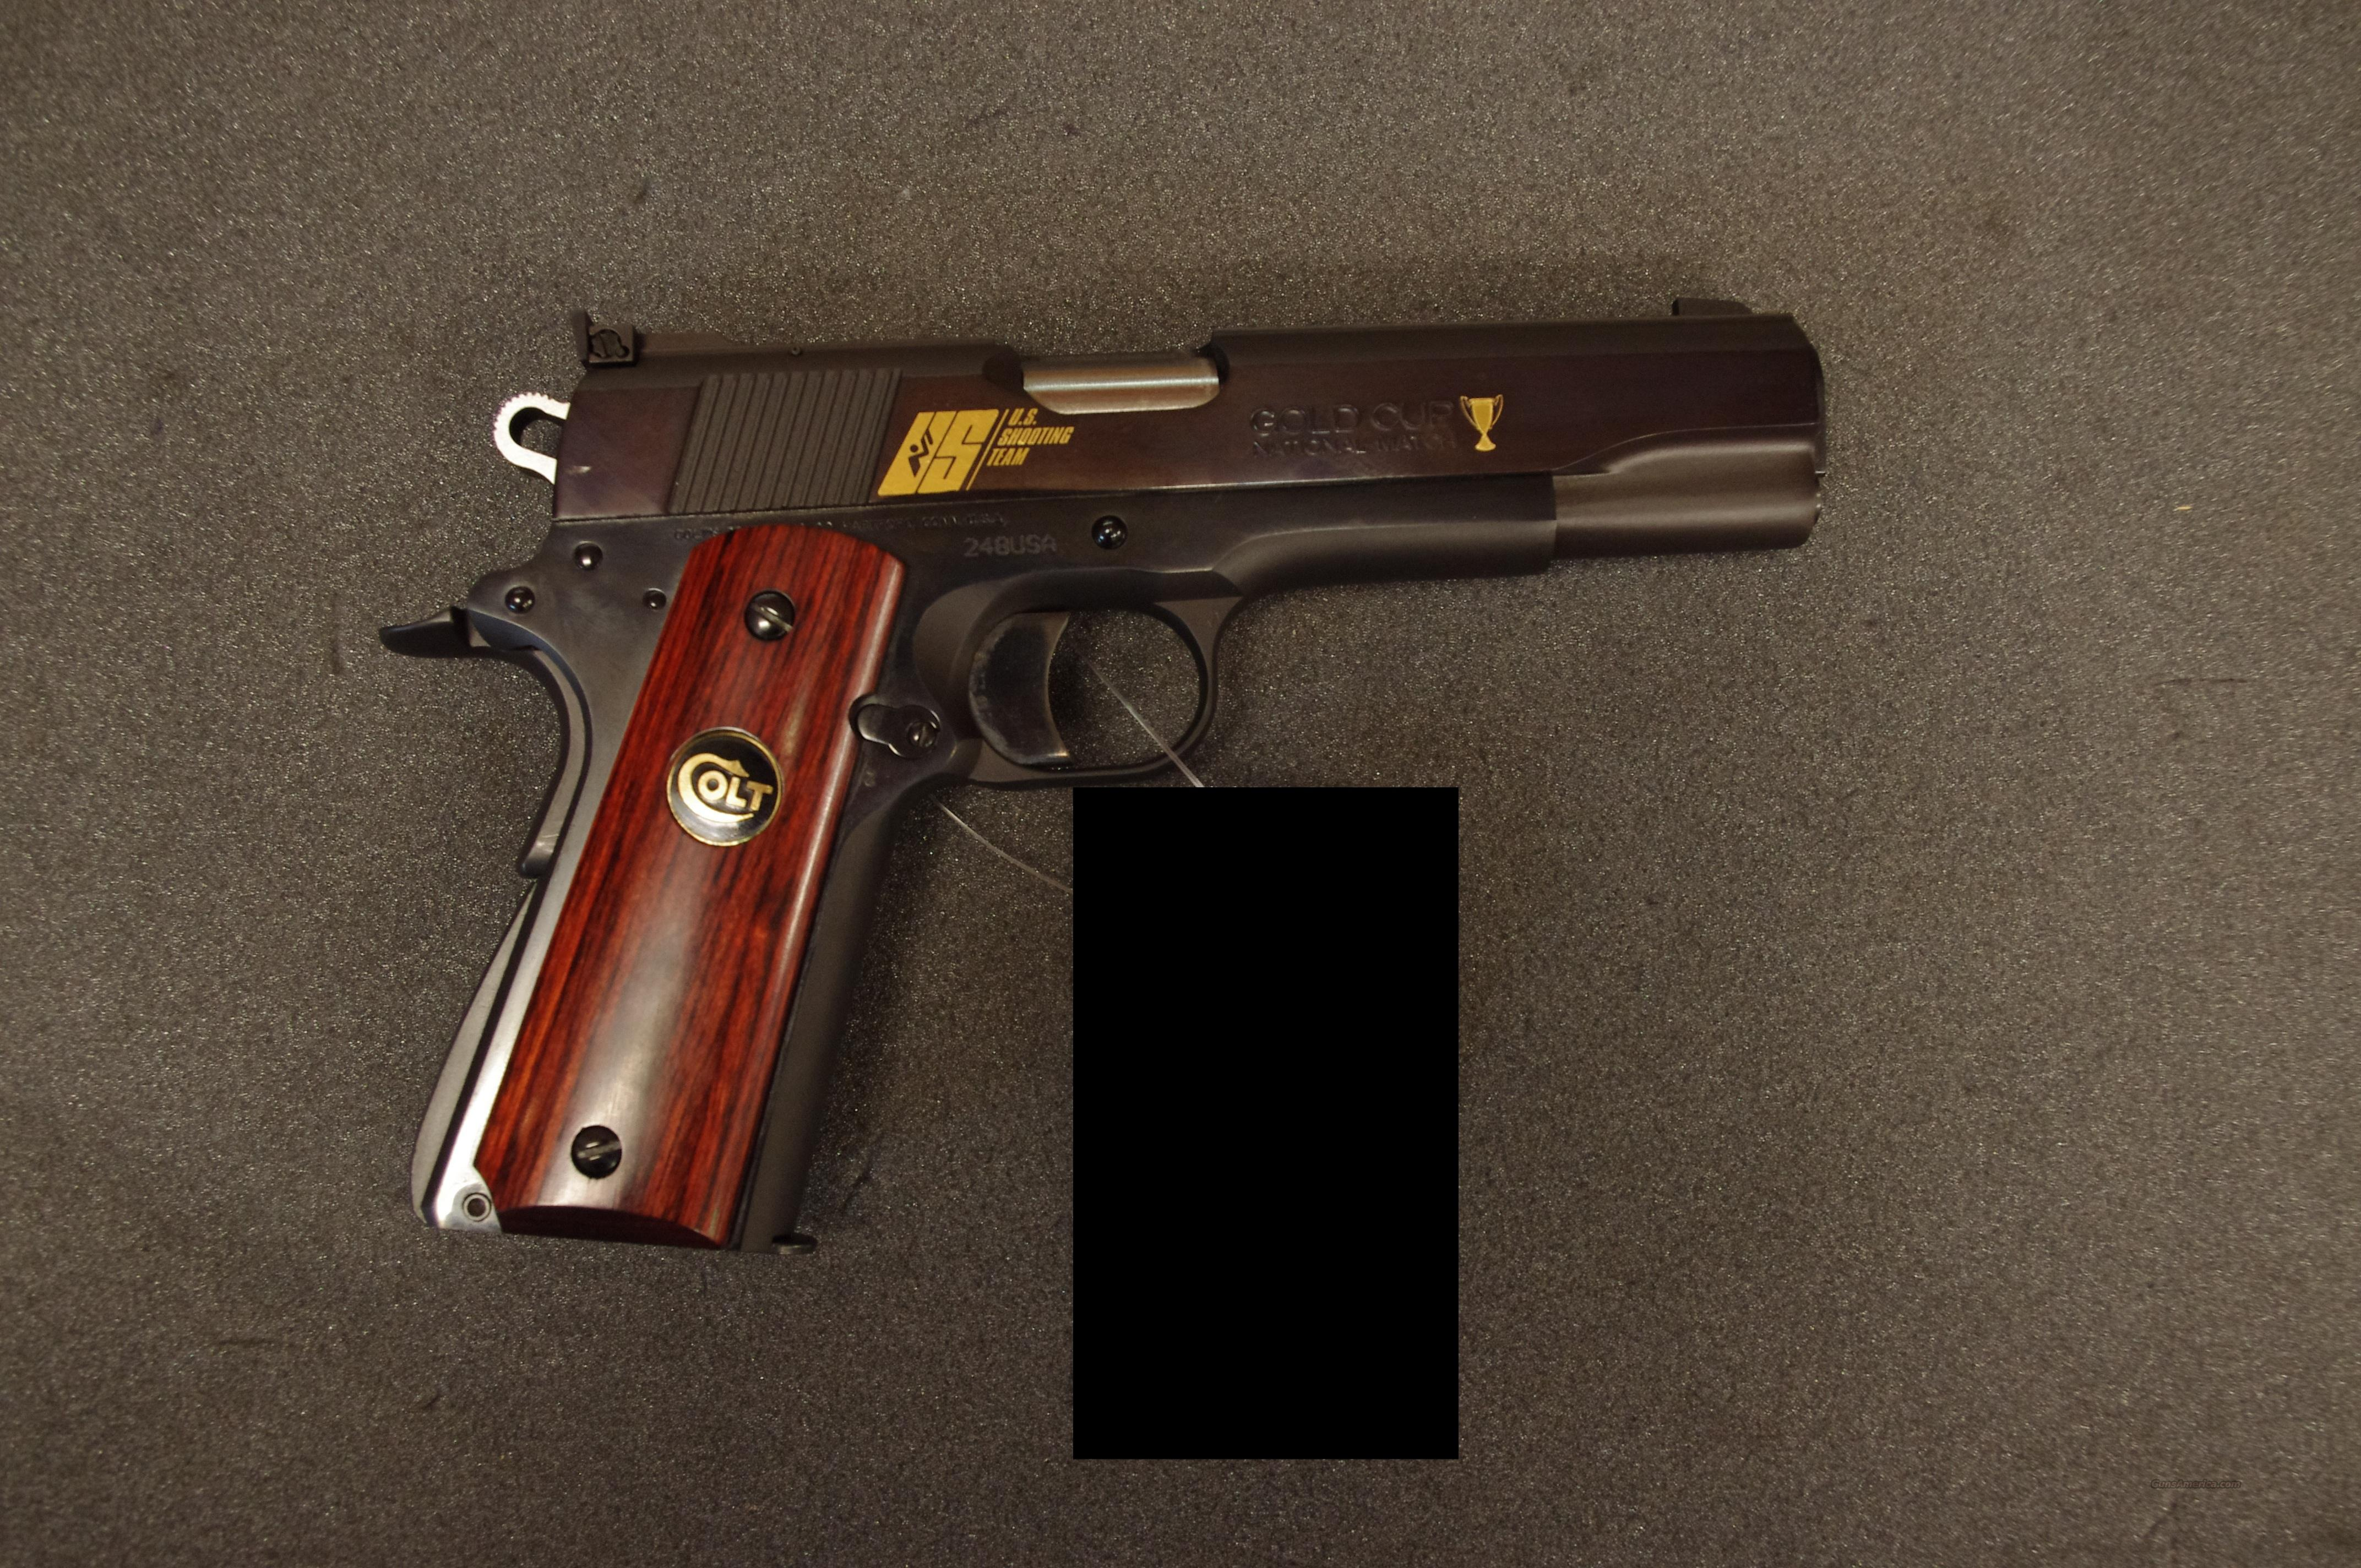 NIB Colt US Shooting Team National Match  Guns > Pistols > Colt Automatic Pistols (1911 & Var)